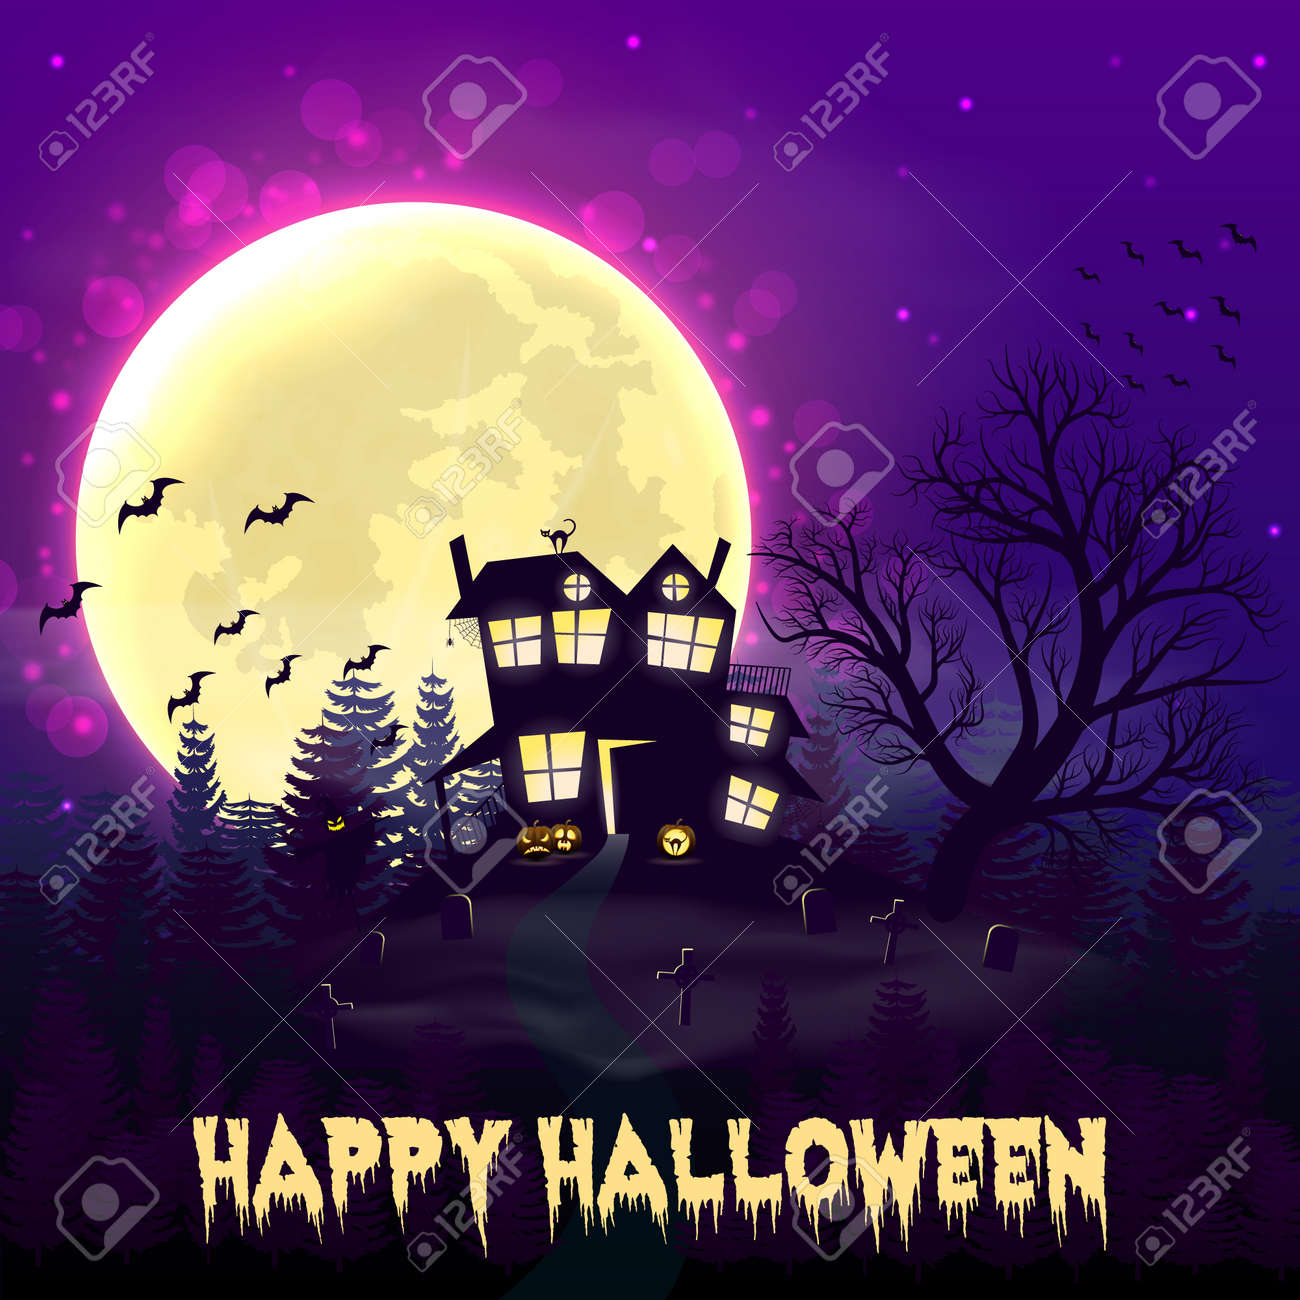 Happy Halloween night background with haunted scary house and full moon. - 109879651